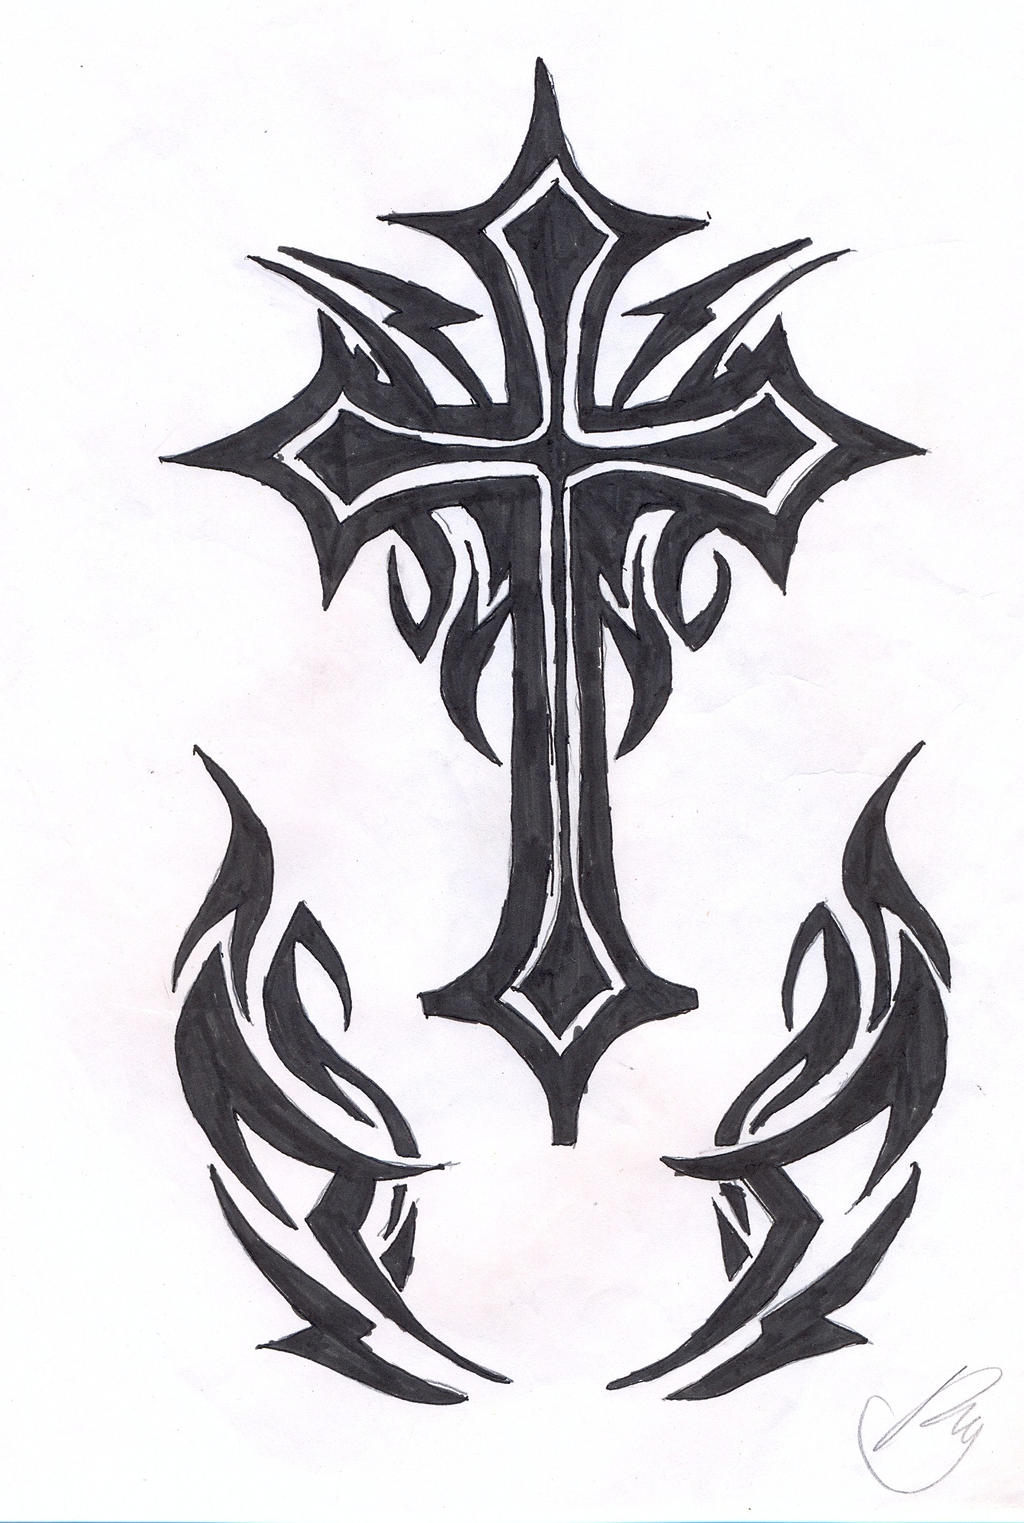 Pictures Of Tribal Cross Tattoos: Tribal Cross By Soifonsama On DeviantArt